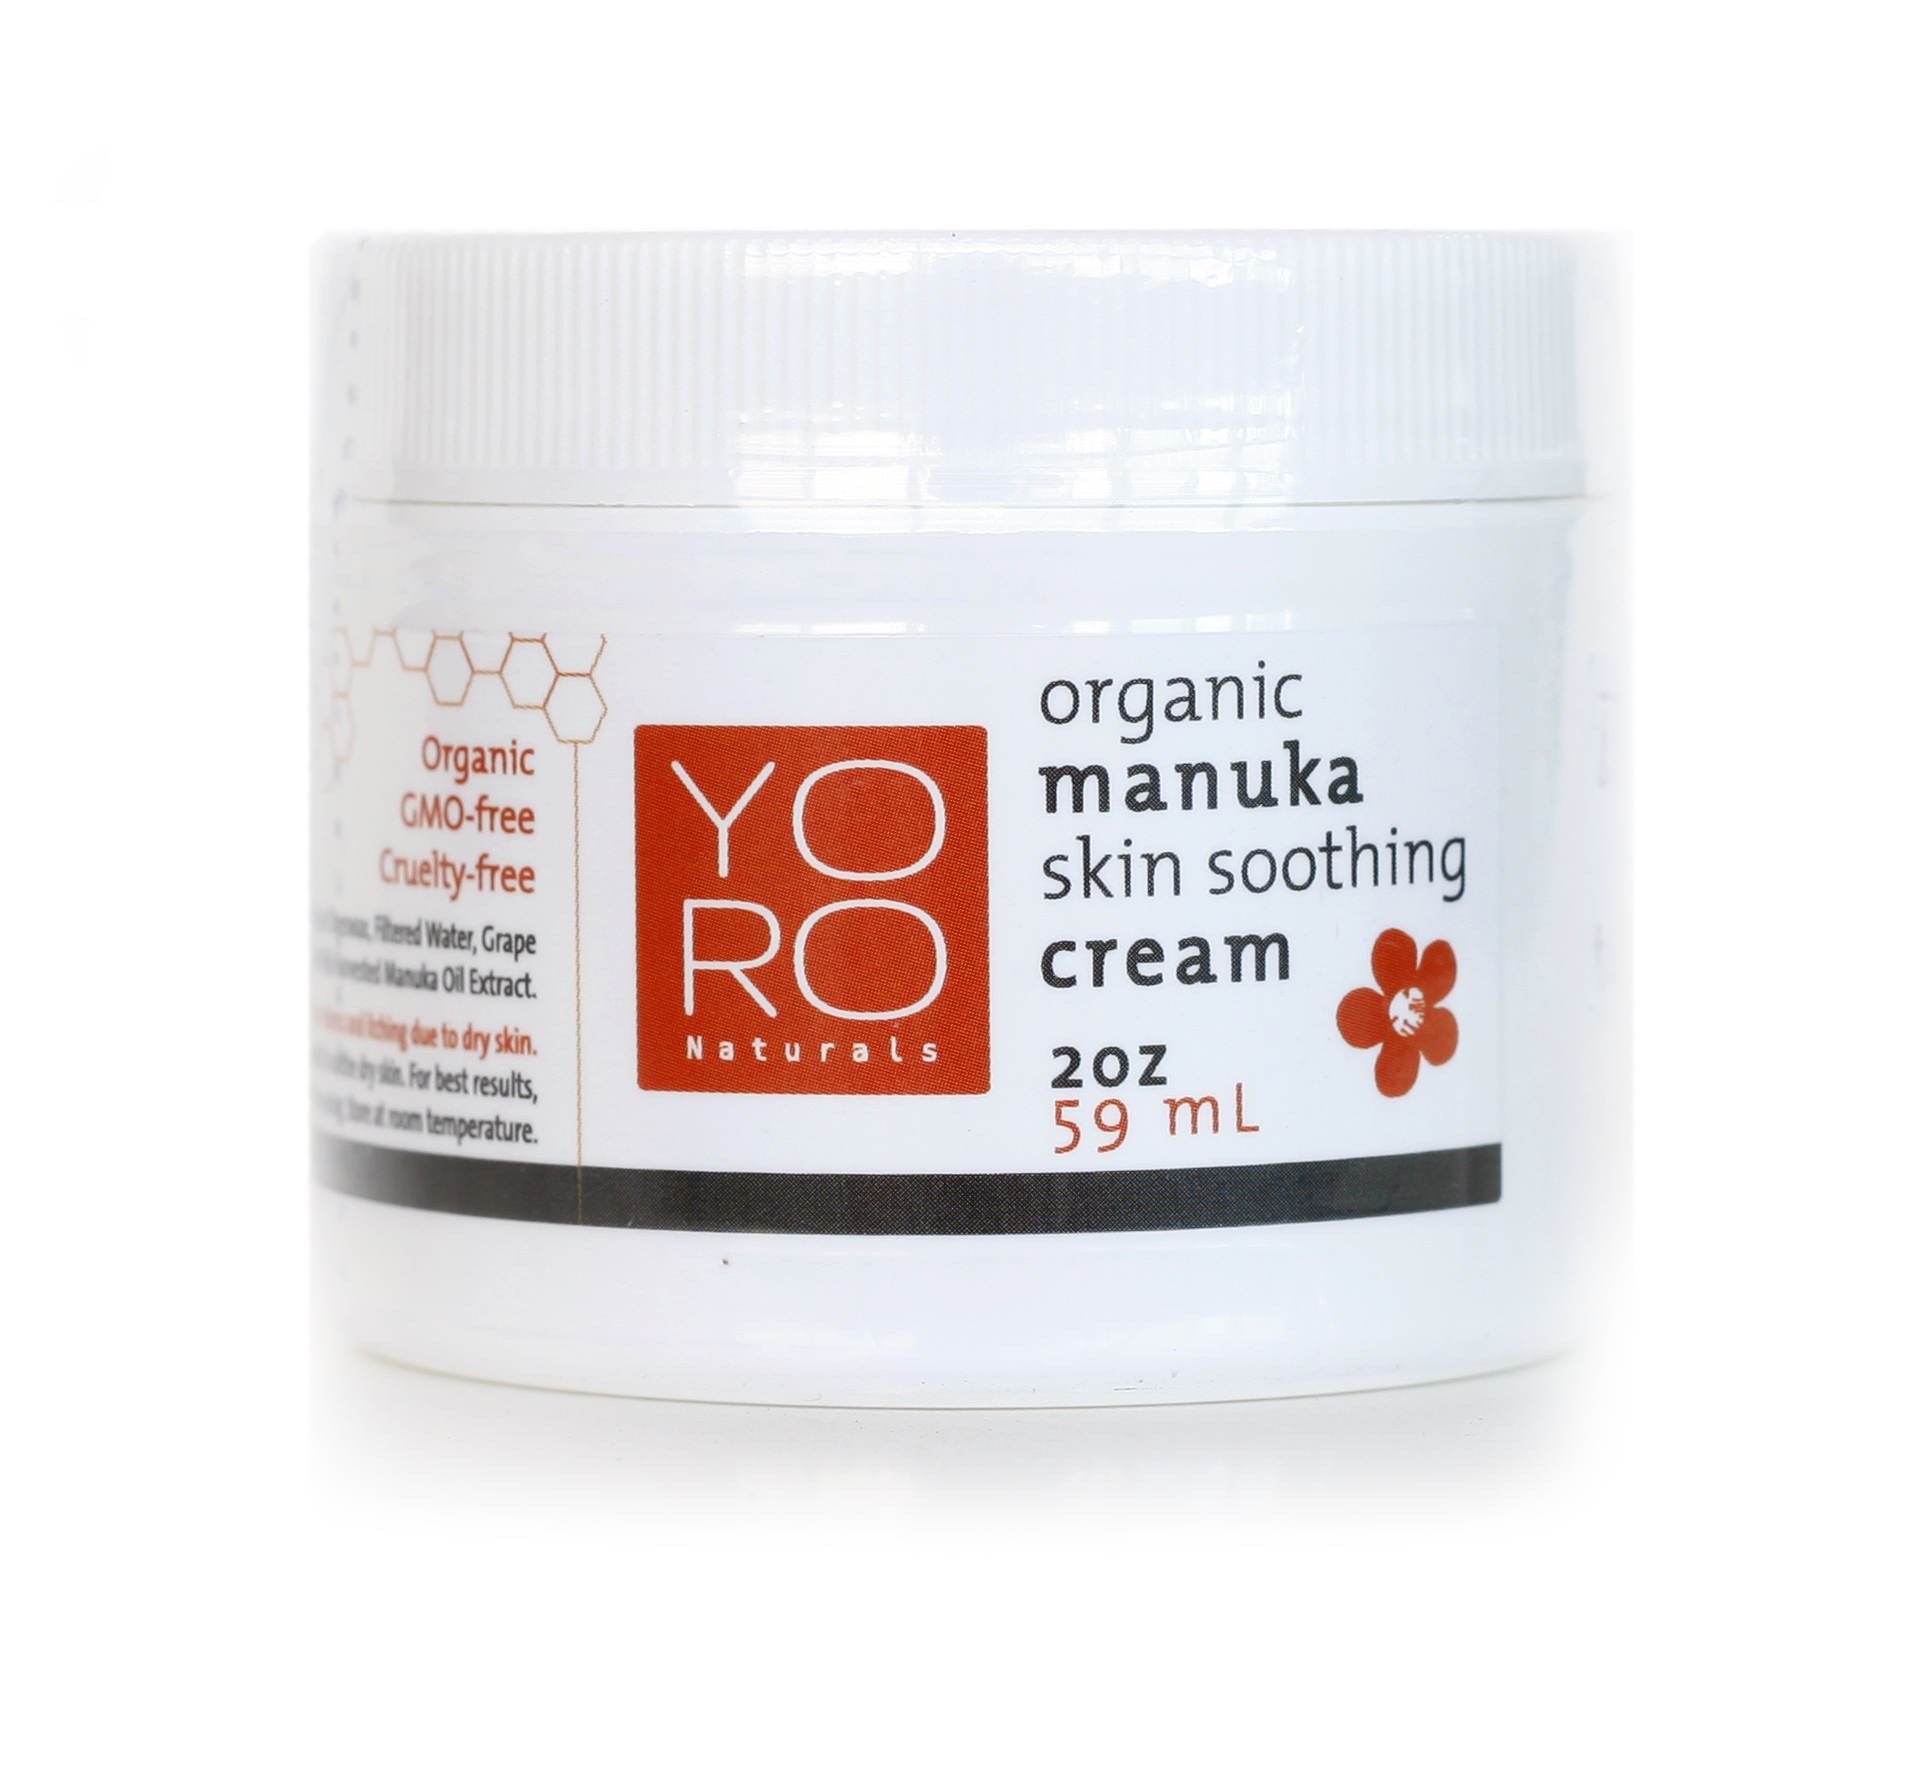 Organic Manuka Skin Soothing Cream previously called Manuka Honey Skin Cream